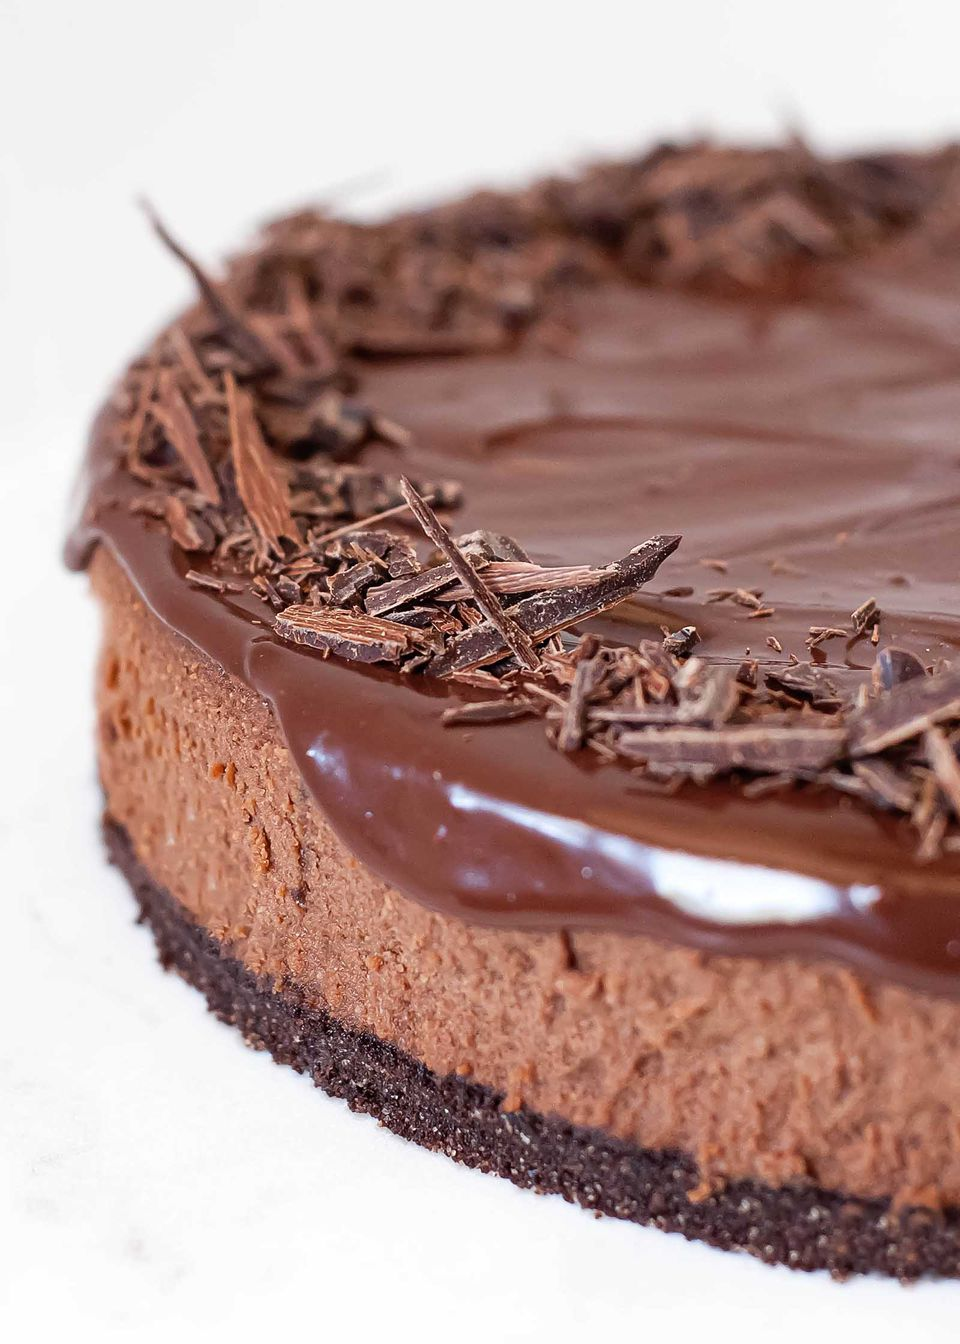 Close up of a chocolate cheeescake with dripping ganache frosting and shards of chocolate on top